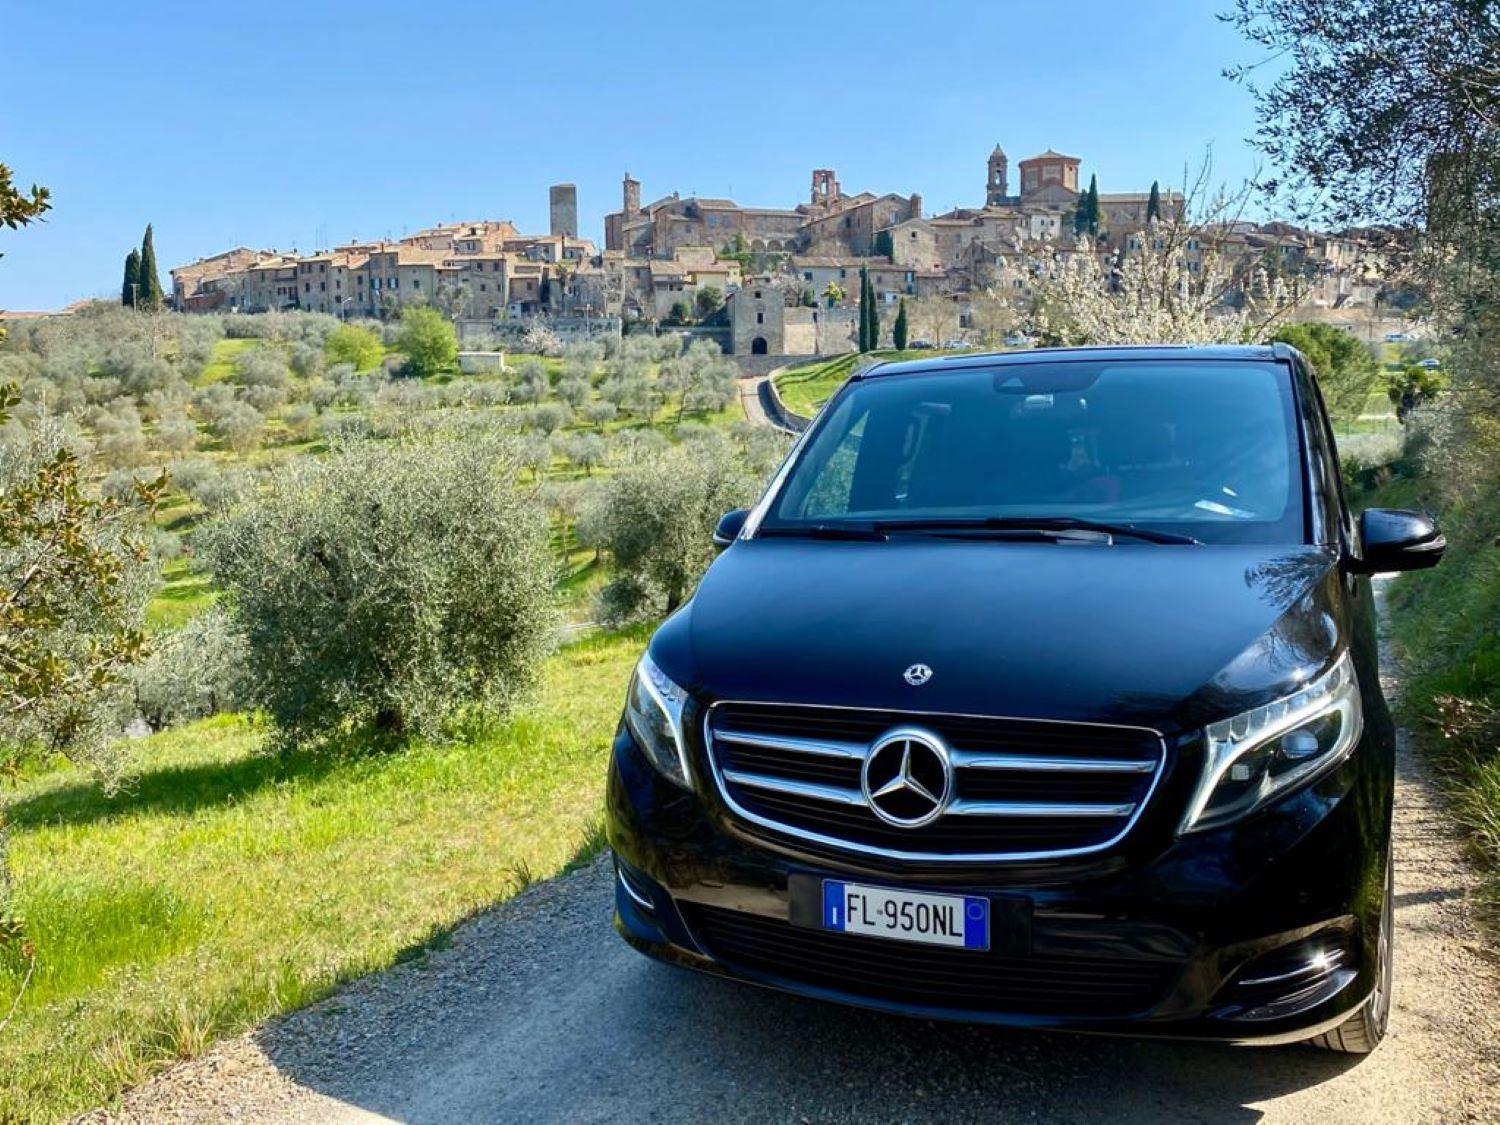 Rome Tours - Private Florence Day Tour